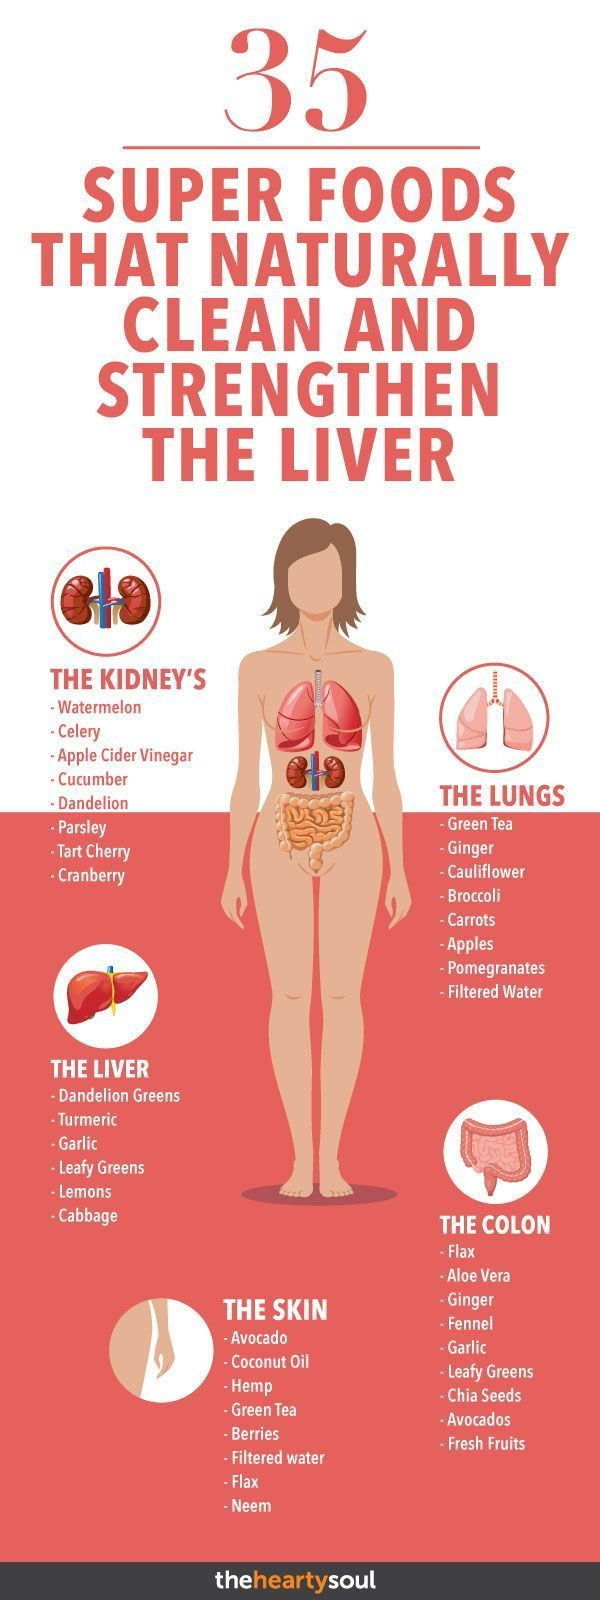 35 Super Foods That Naturally Clean and Strengthen The Liver 1